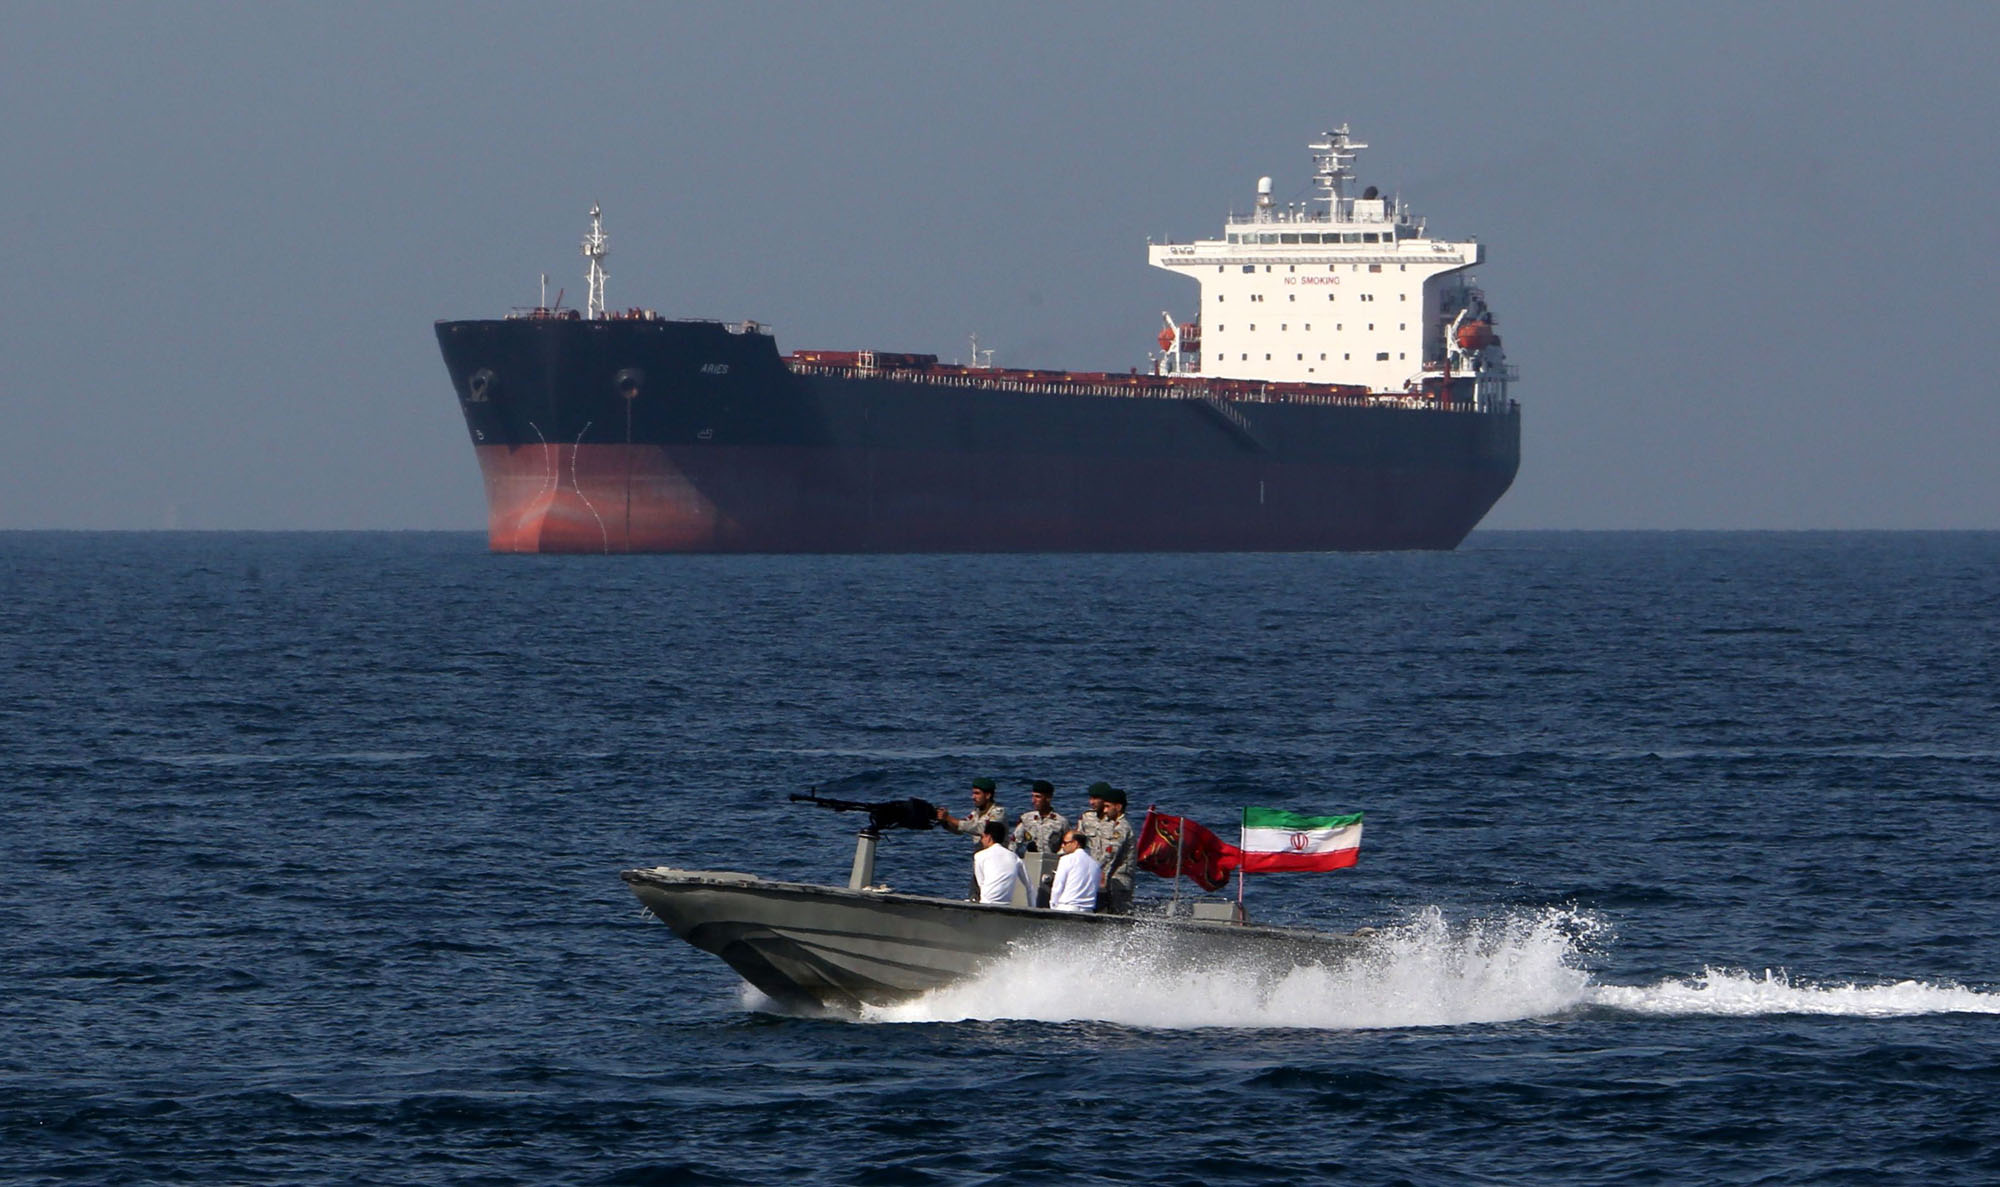 Iranian soldiers take part in 'National Persian Gulf Day' in the Strait of Hormuz on April 19. Iran has dismissed as baseless U.S. accusations that it was involved in last week's attacks on two oil tankers in the Gulf of Oman. | AFP-JIJI